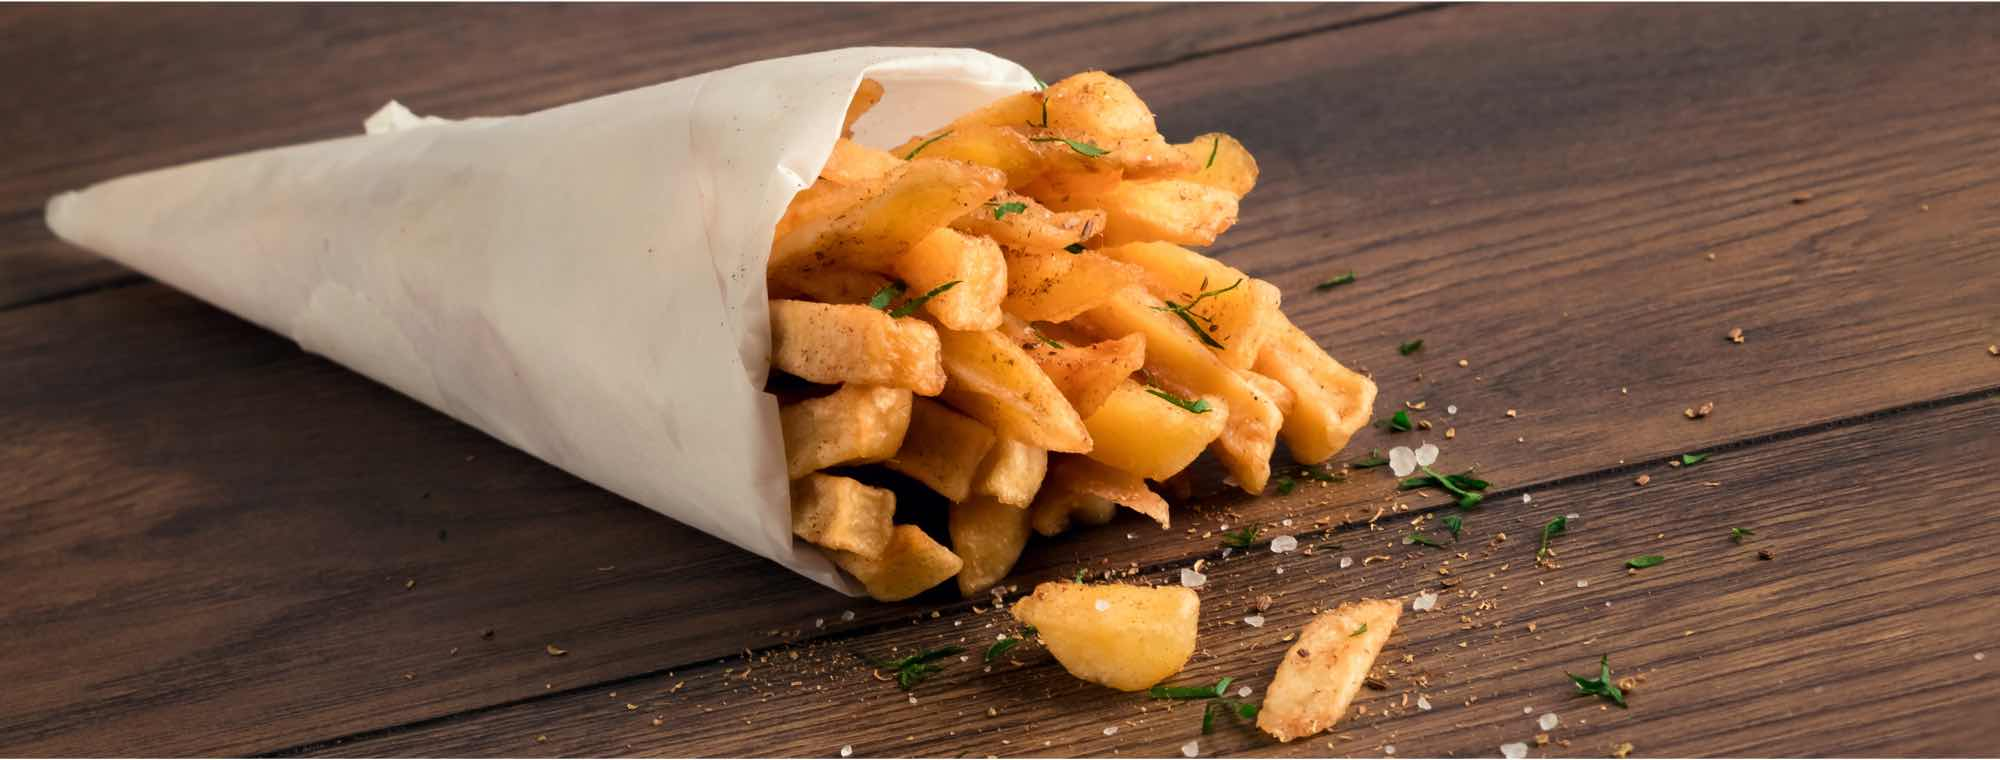 Fresh hot chips are packaged in an open paper bag